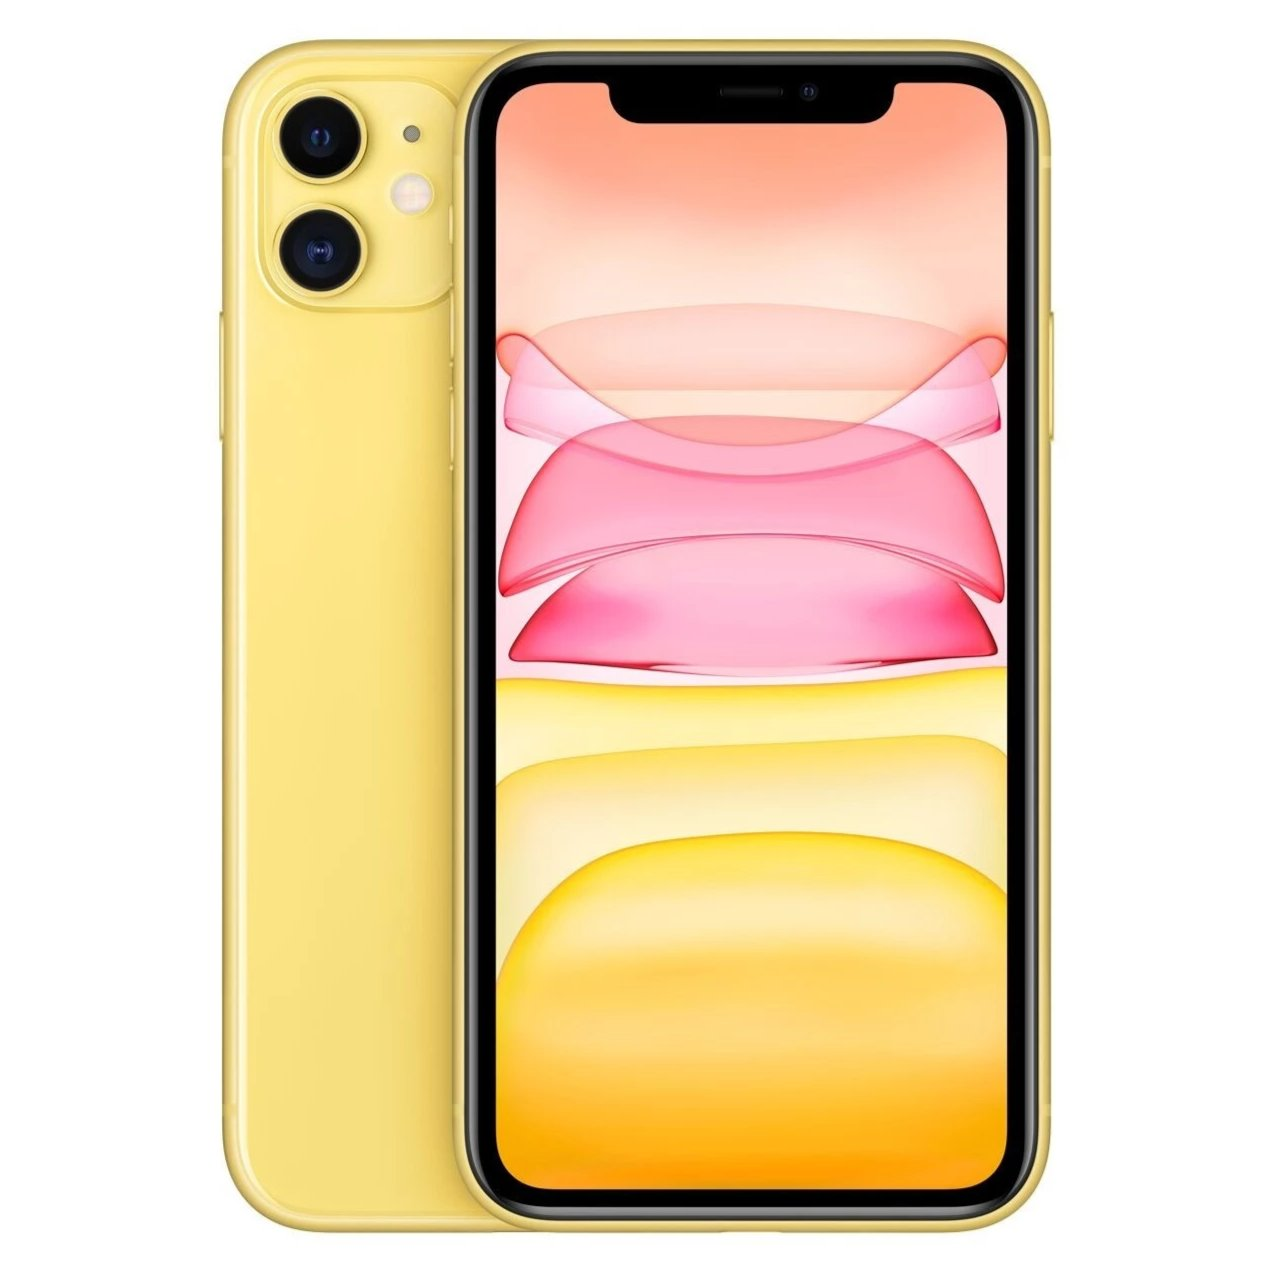 Apple iPhone 11 (256GB, Yellow, Local Stock)-Smartphones (New)-Connected Devices